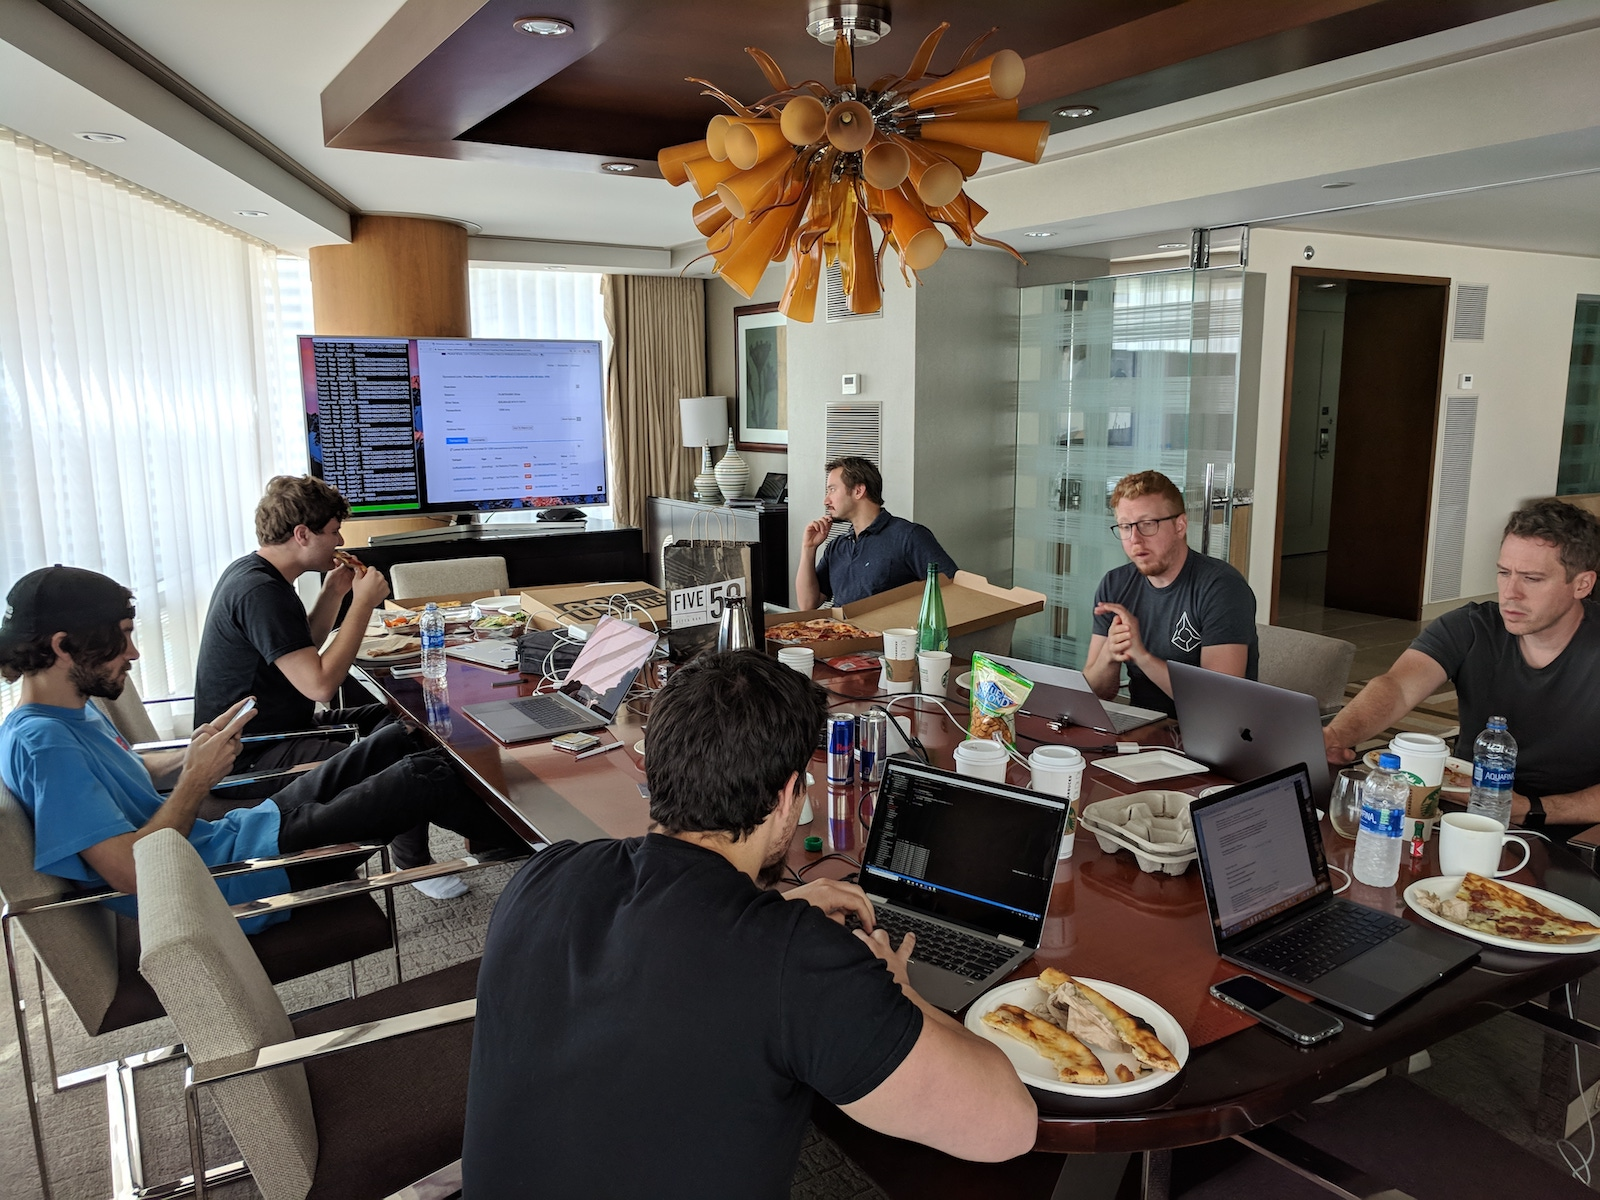 Pizza before launch—which would come much later in the evening. From left to right: Tom Kysar, Joey Krug, Alex Chapman (developer), Jack Peterson, Paul Gebheim, and Scott Bigelow.